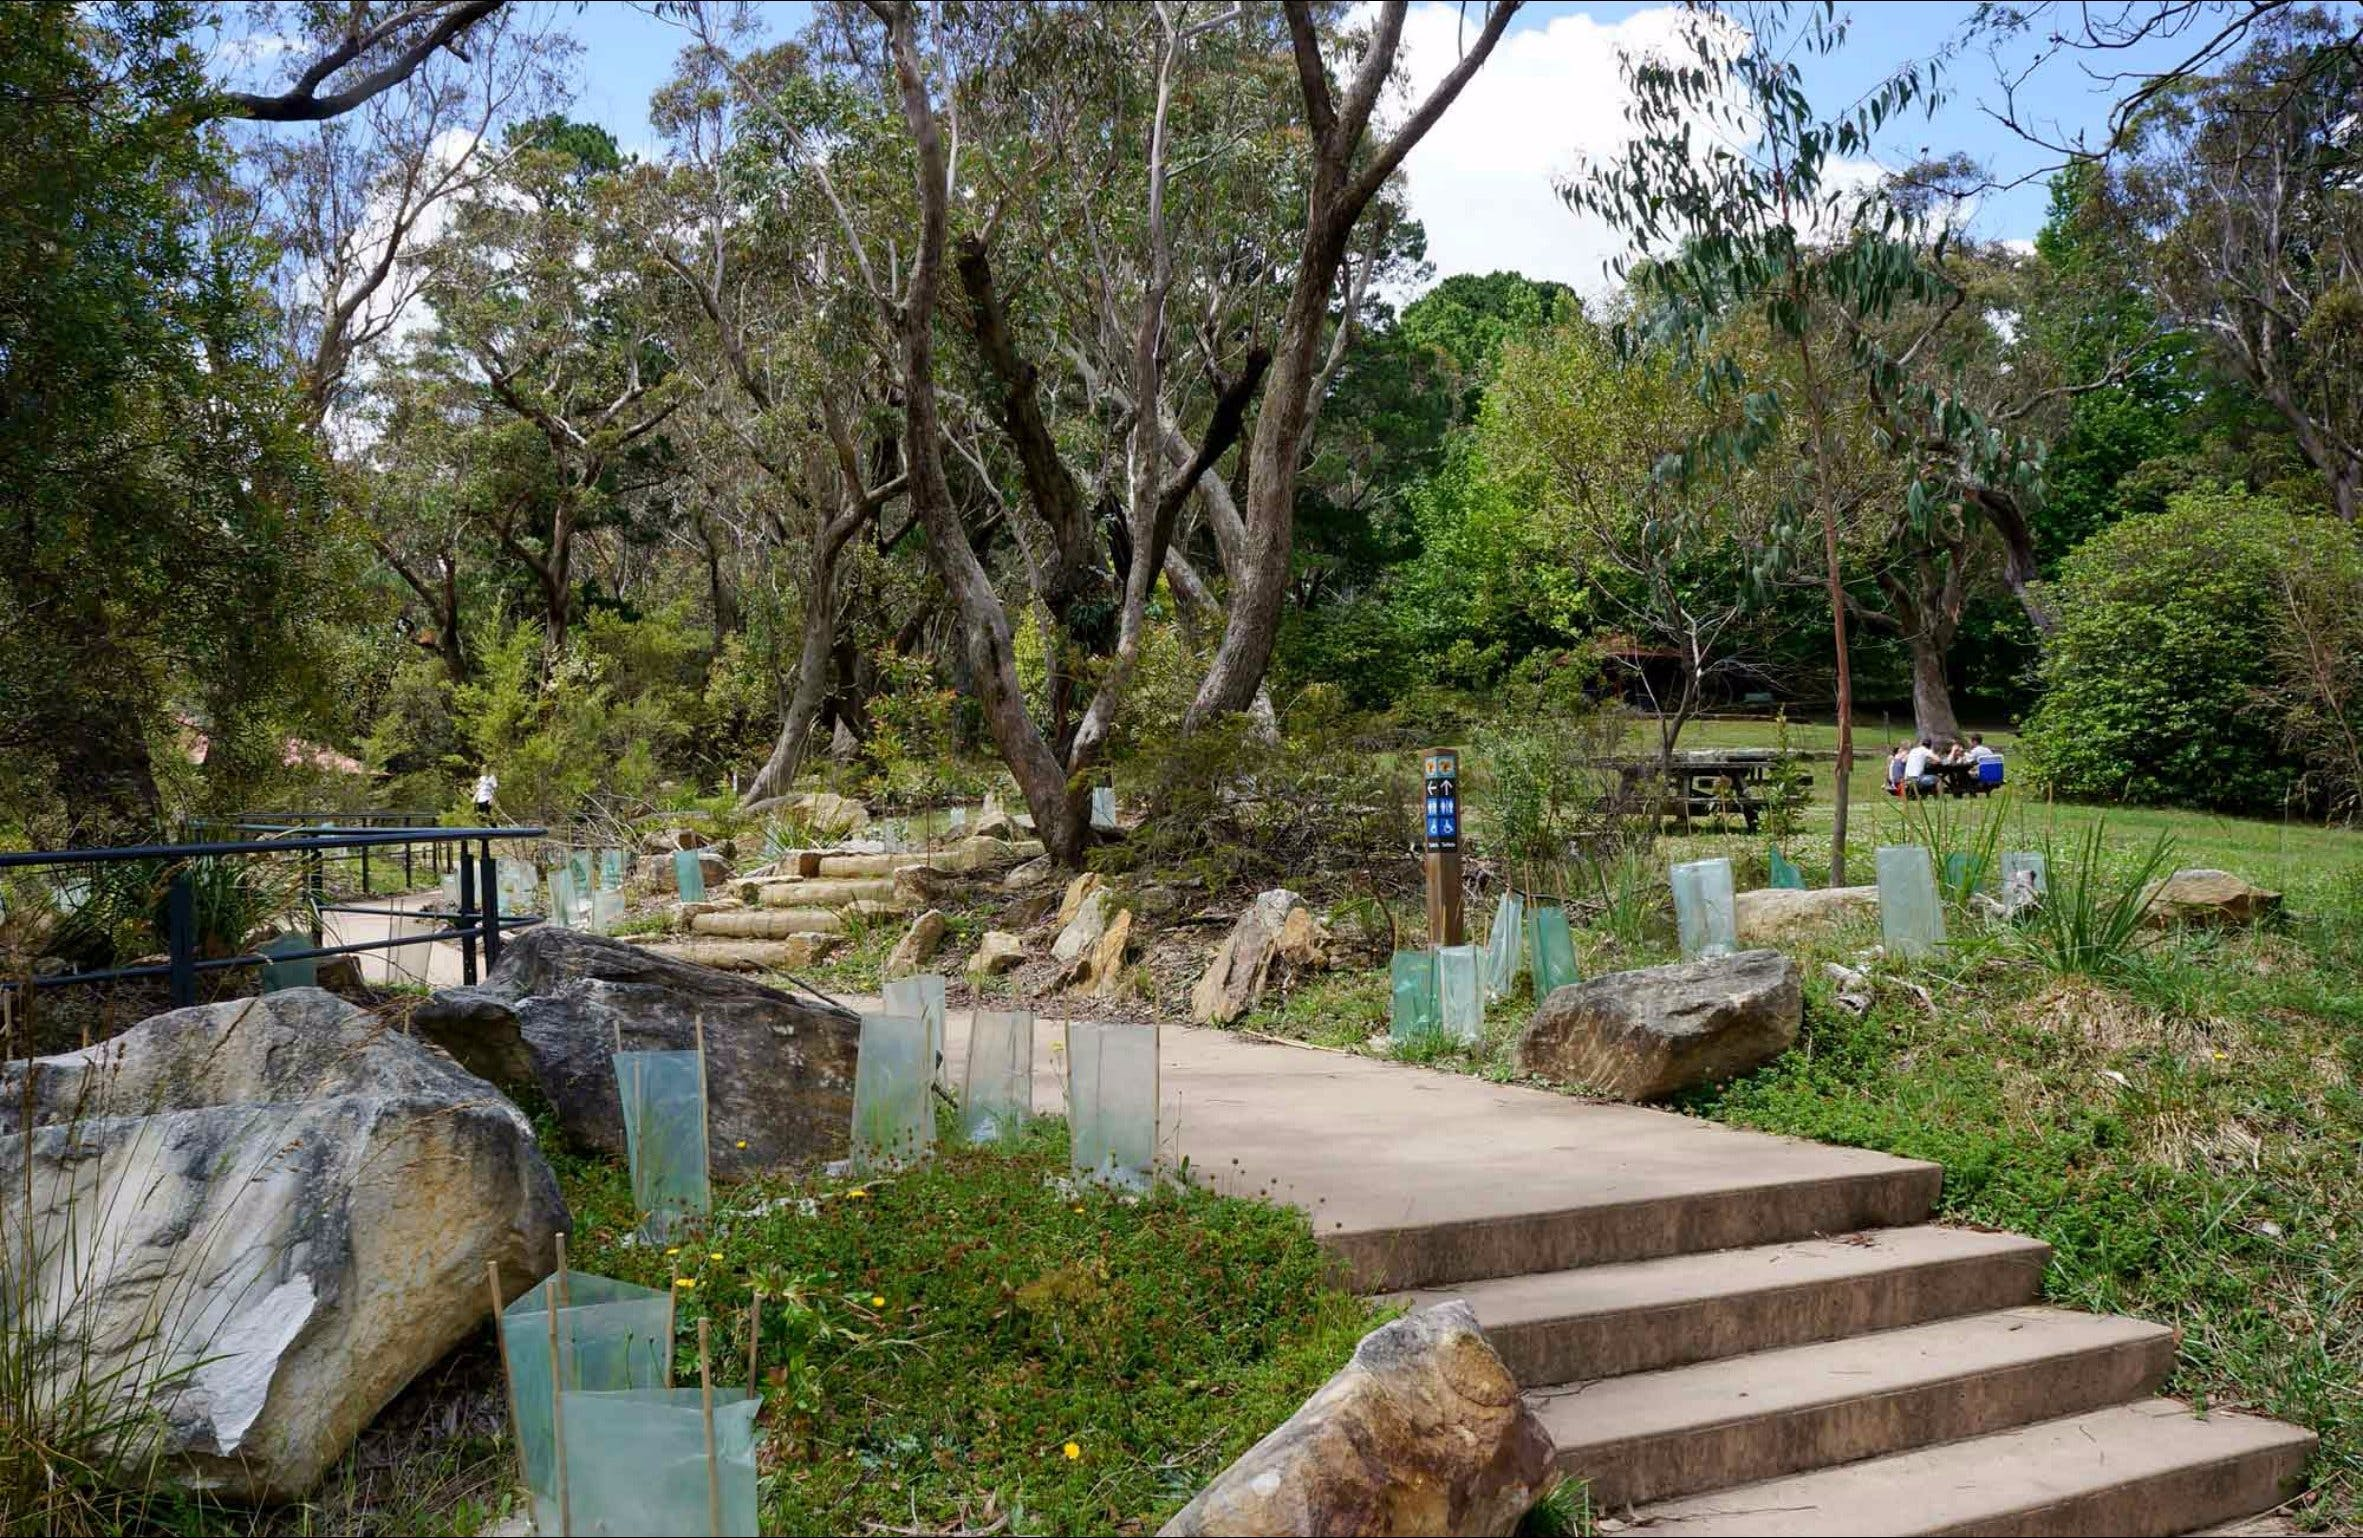 Wentworth Falls picnic area - Accommodation Perth